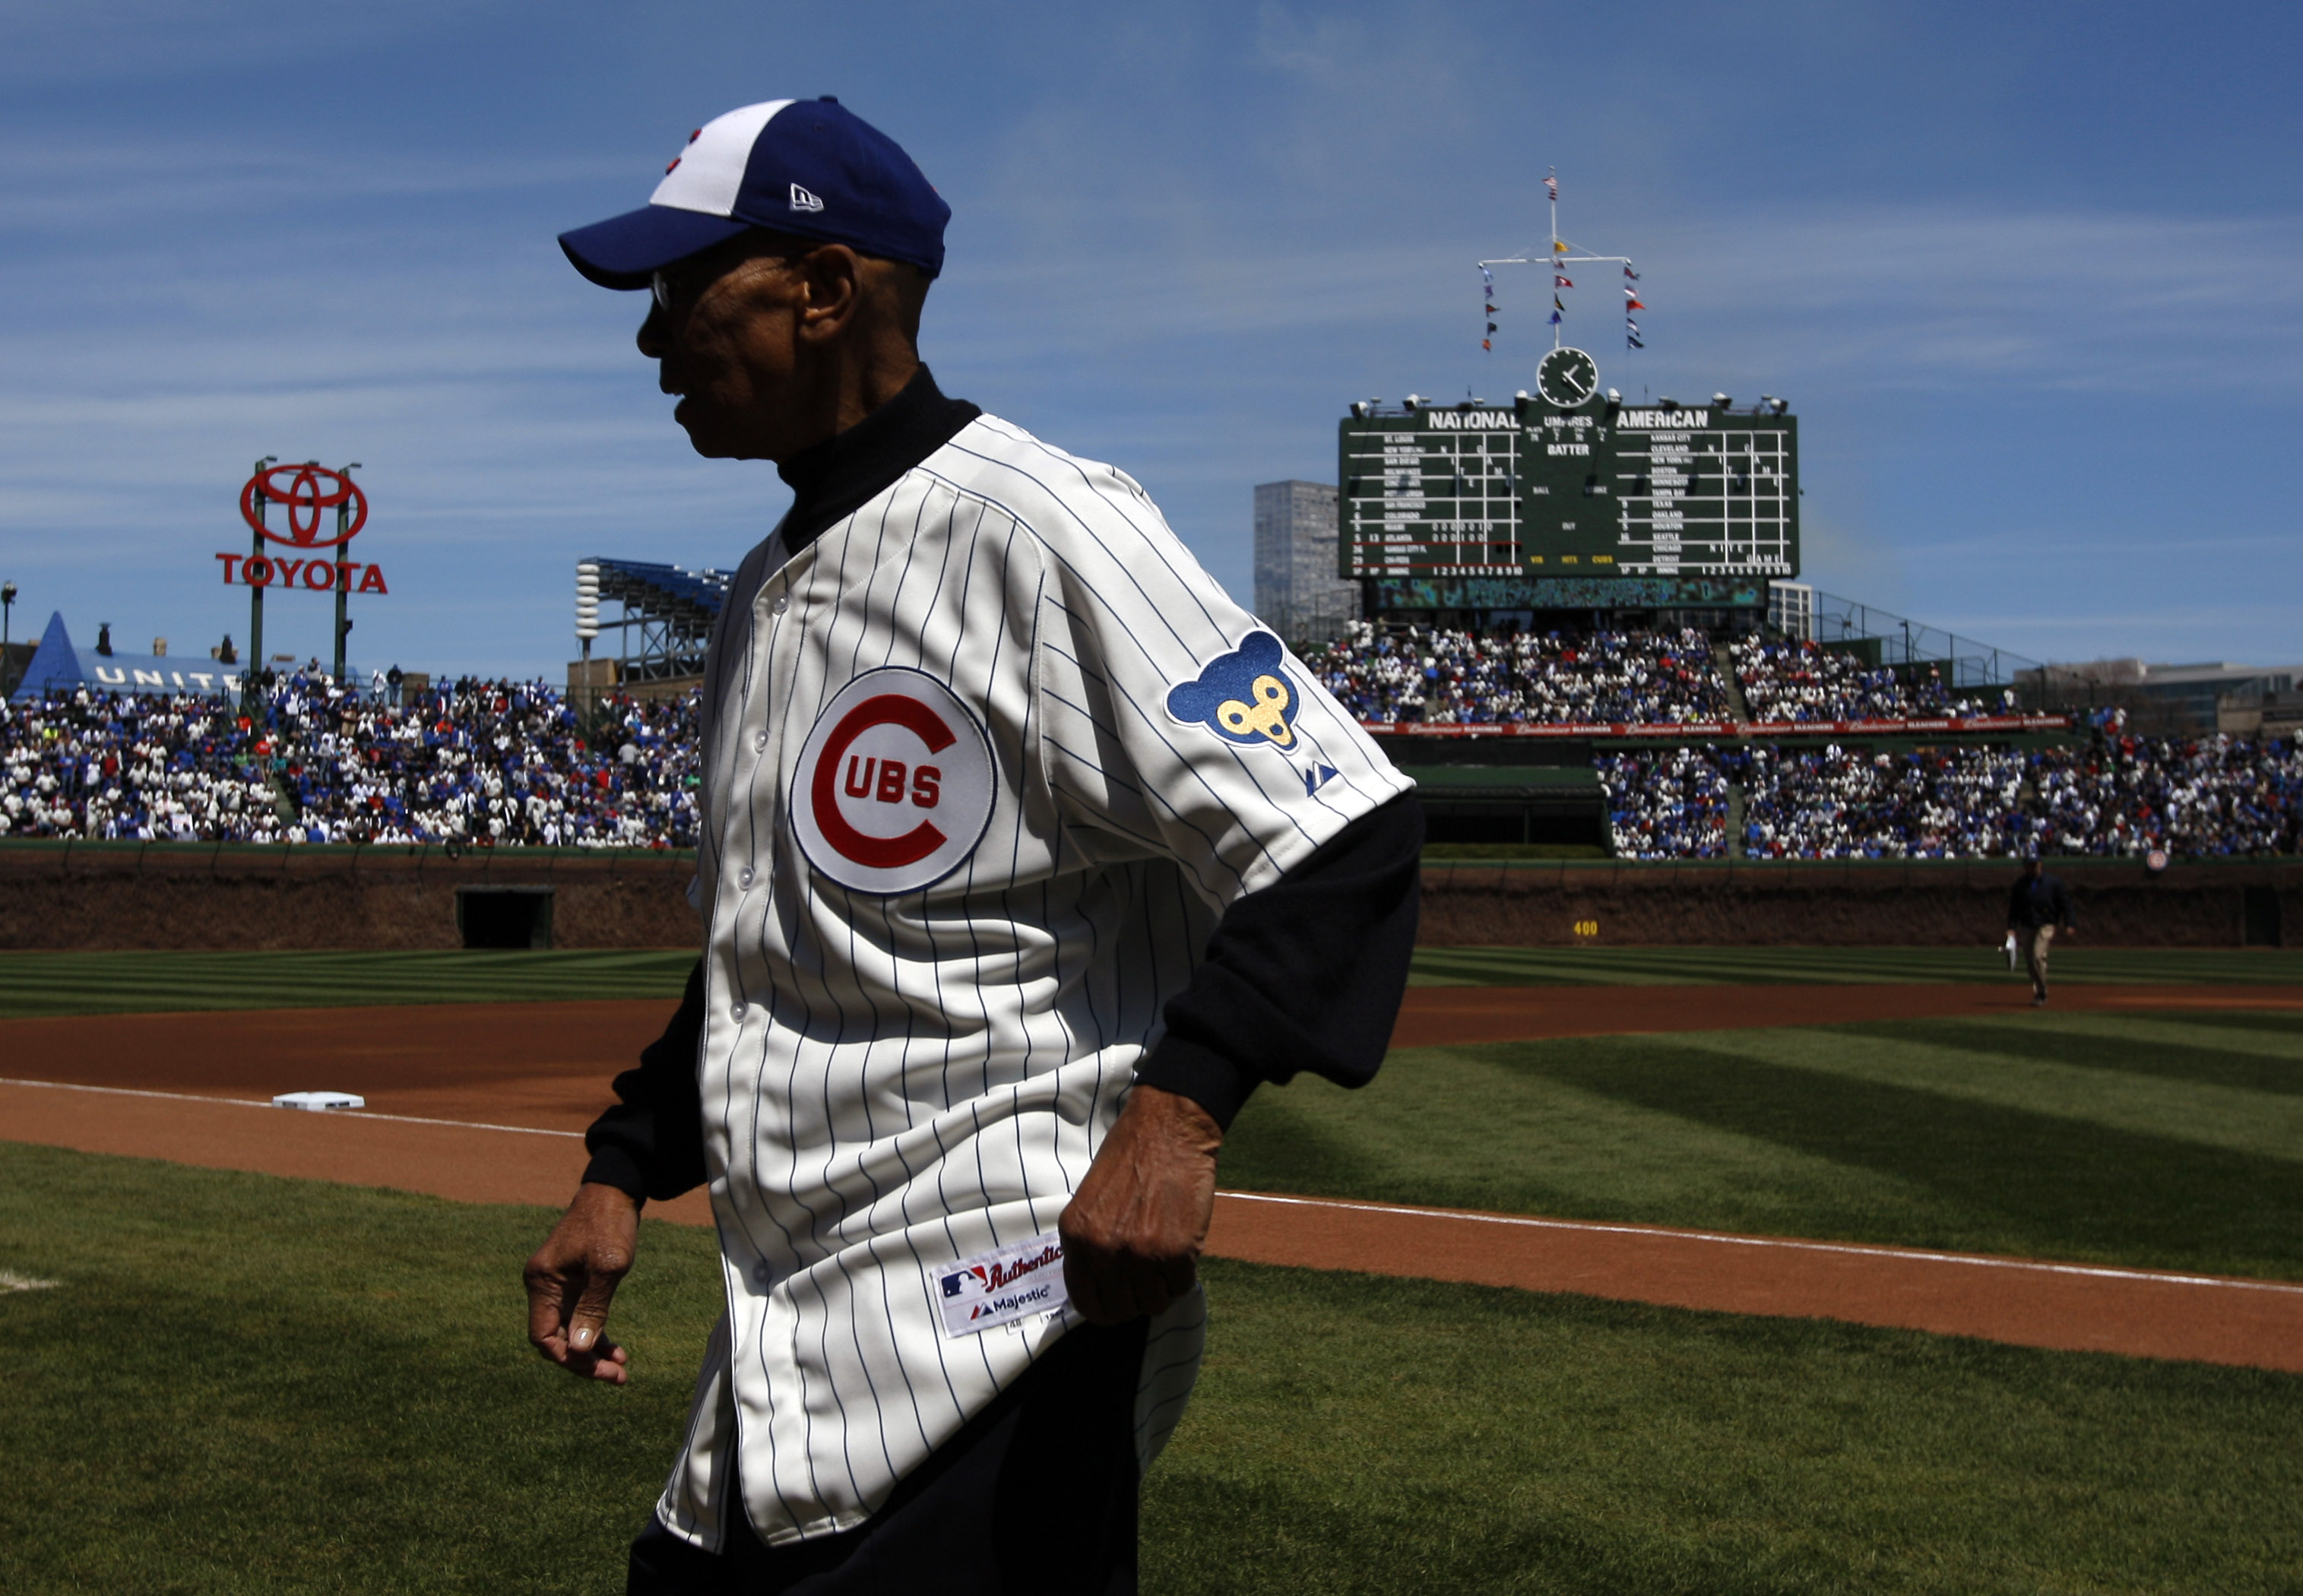 Rest in peace, 14. (Jerry Lai-USA TODAY Sports)